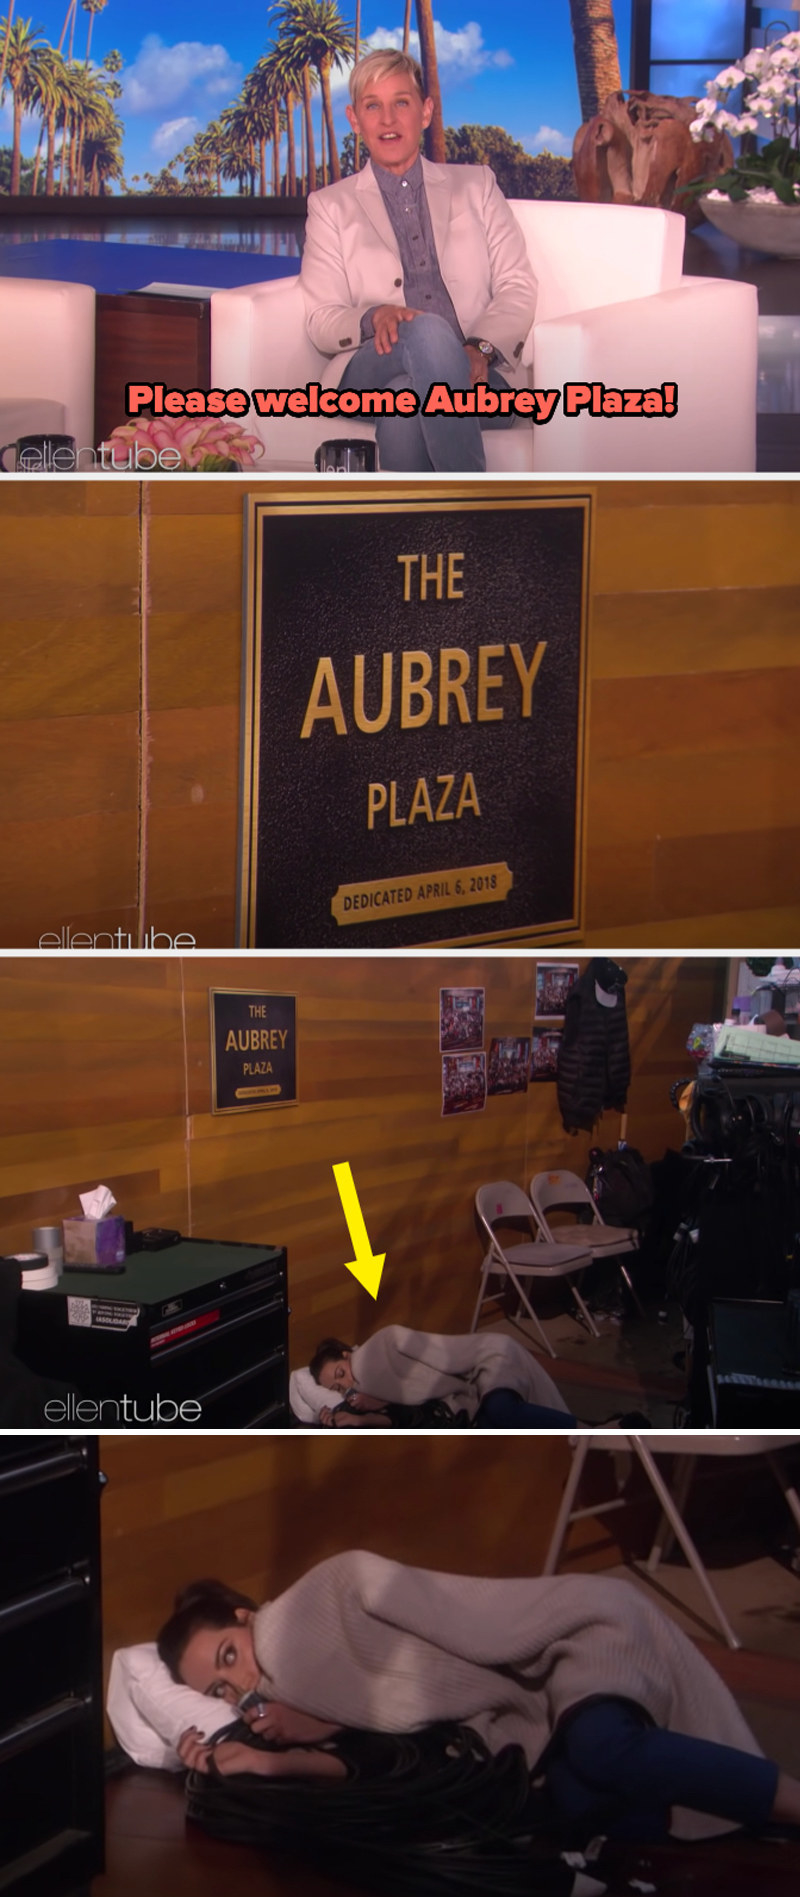 """The """"Aubrey Plaza"""" backstage at Ellen's show, where Aubrey is sleeping on the floor with a pillow and blanket"""